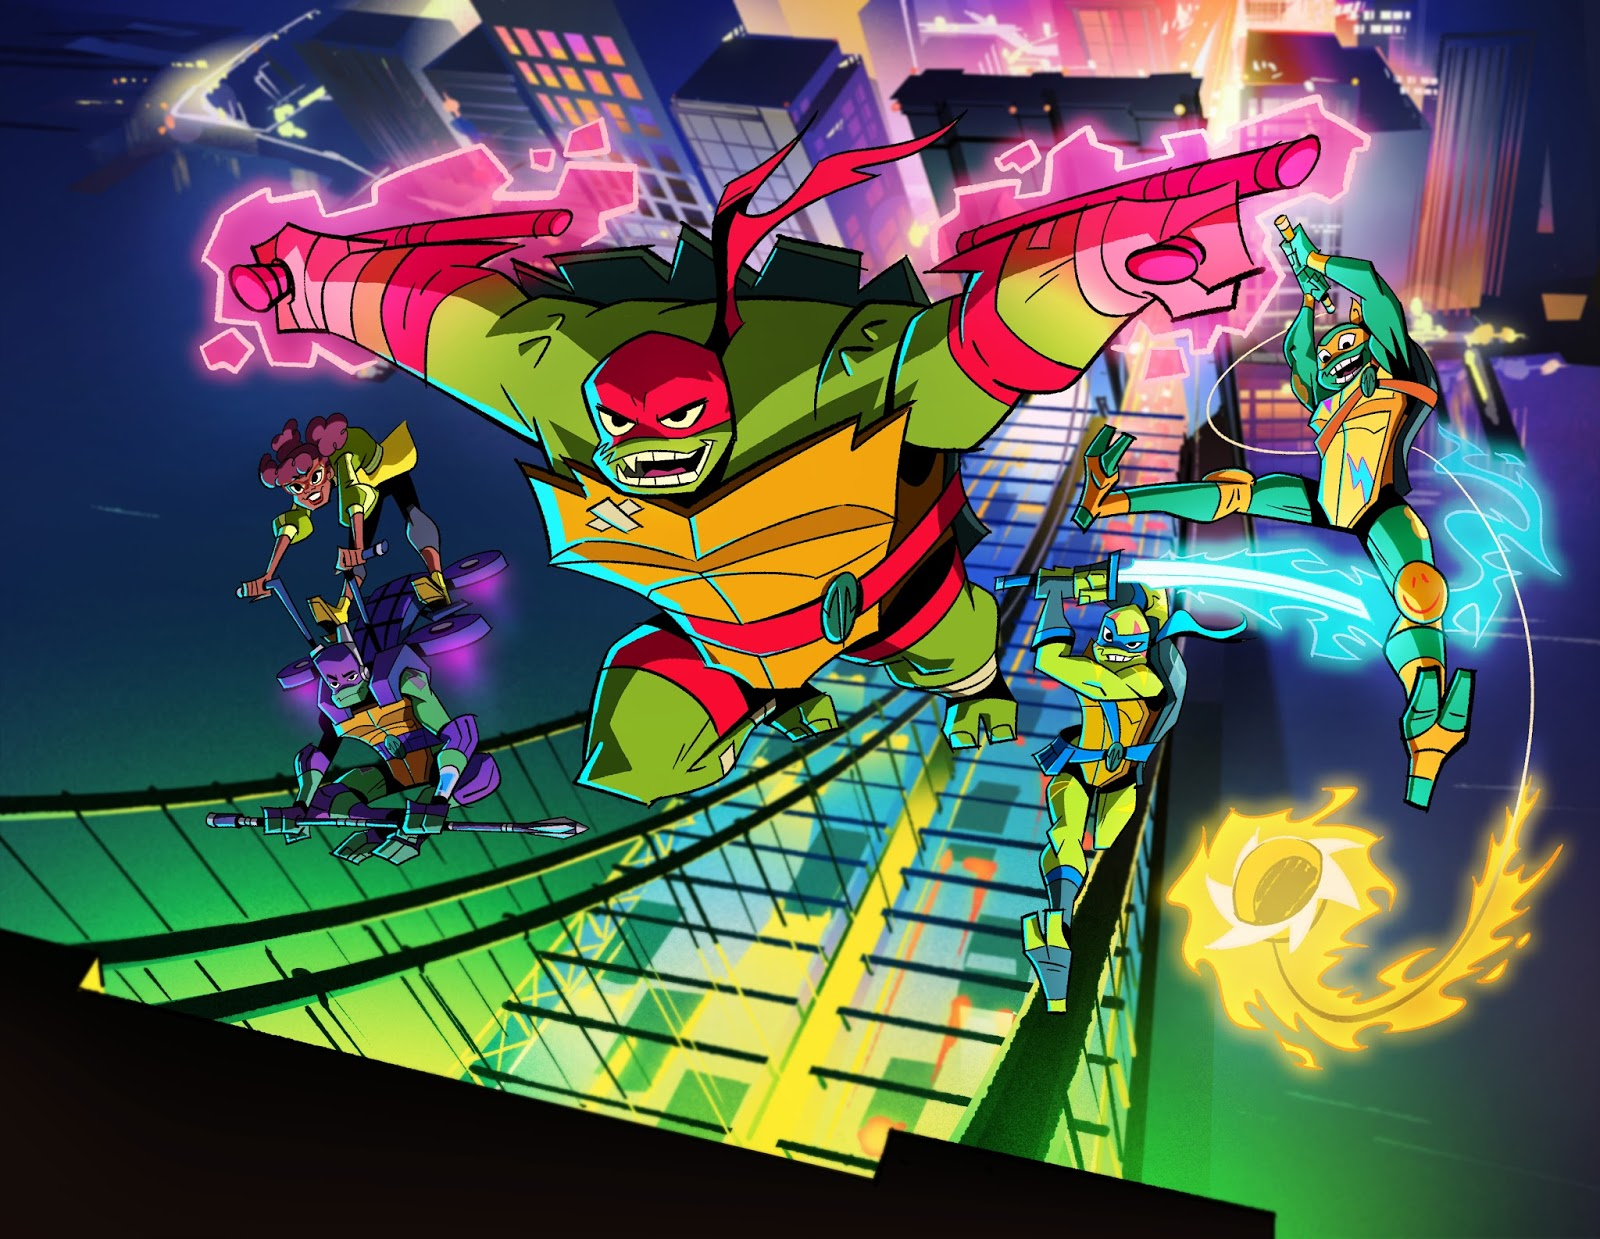 Nickalive November 2018 On Nickelodeon Italy Rise Of The Tmnt